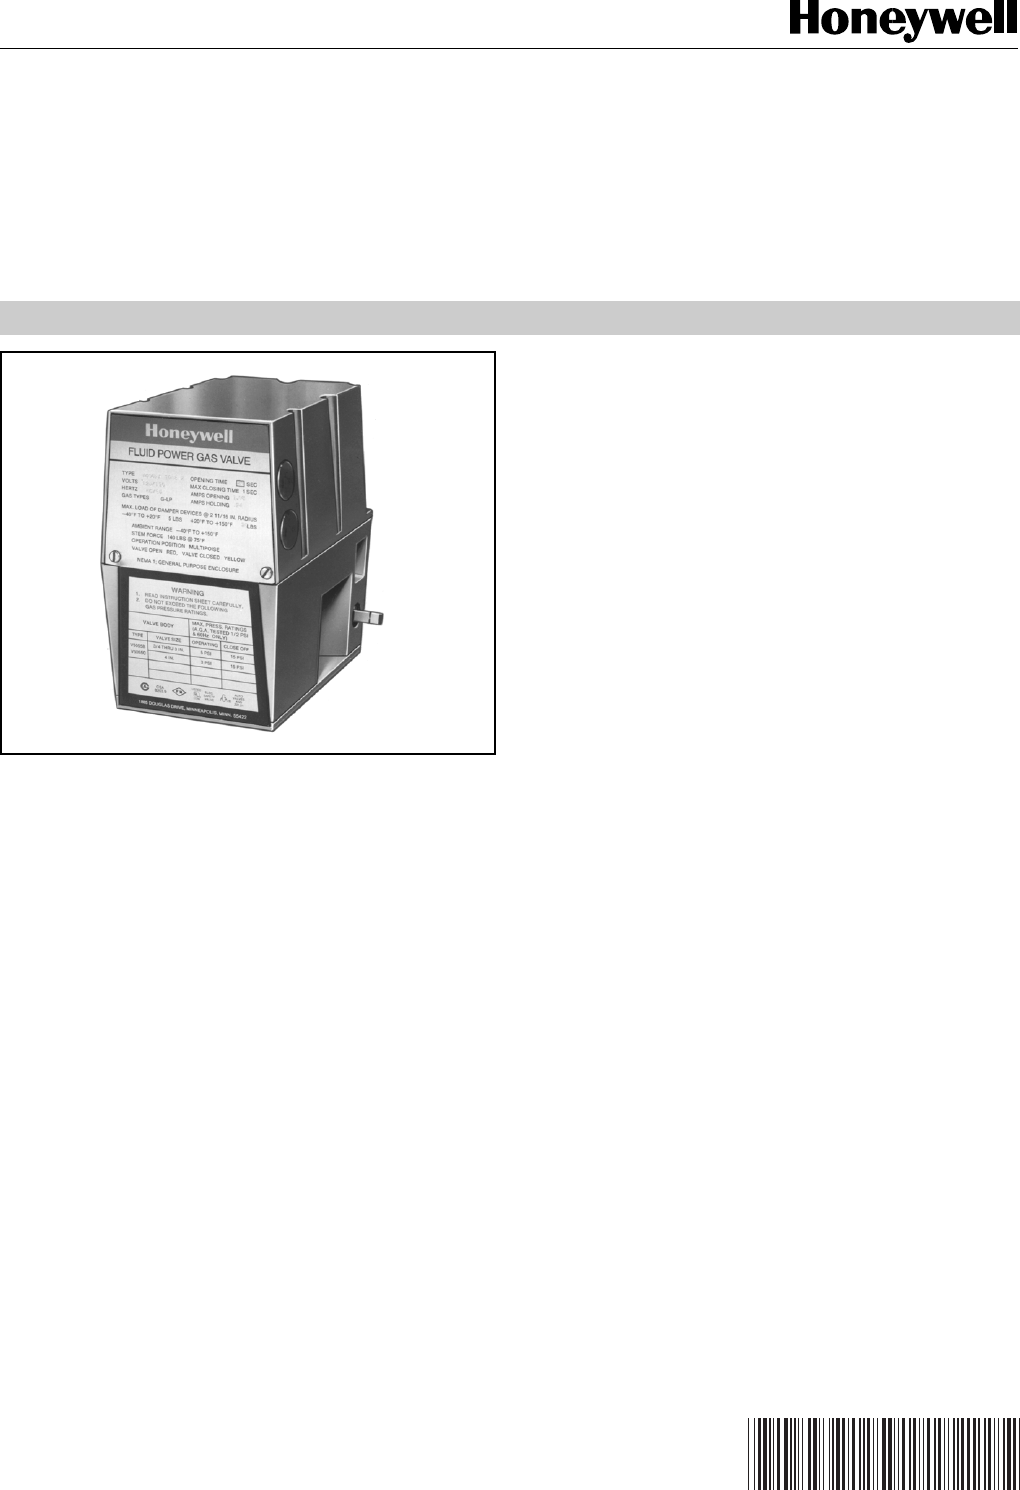 honeywell thermostat th6220d1002 manual pdf